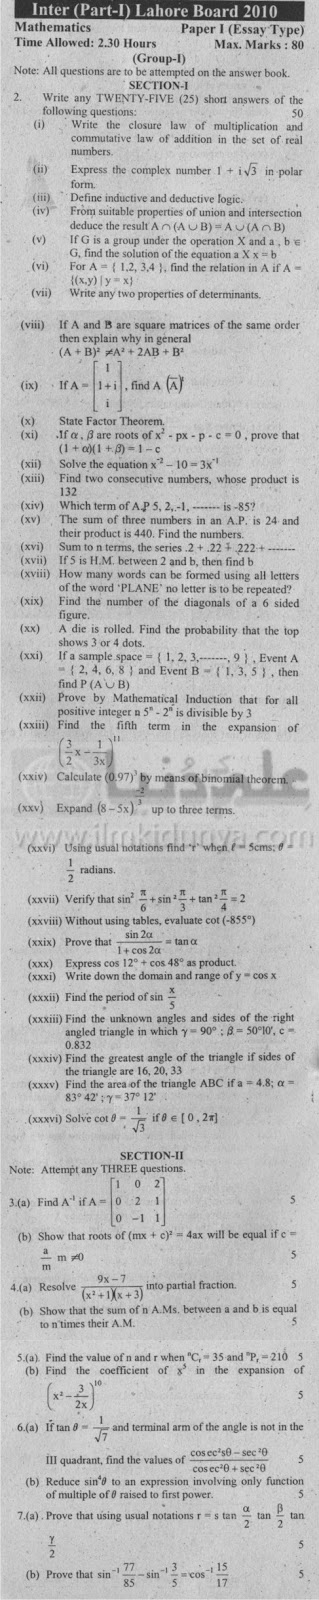 Inter Part I Mathematics Subjective Paper I Group I Lahore Board 2010